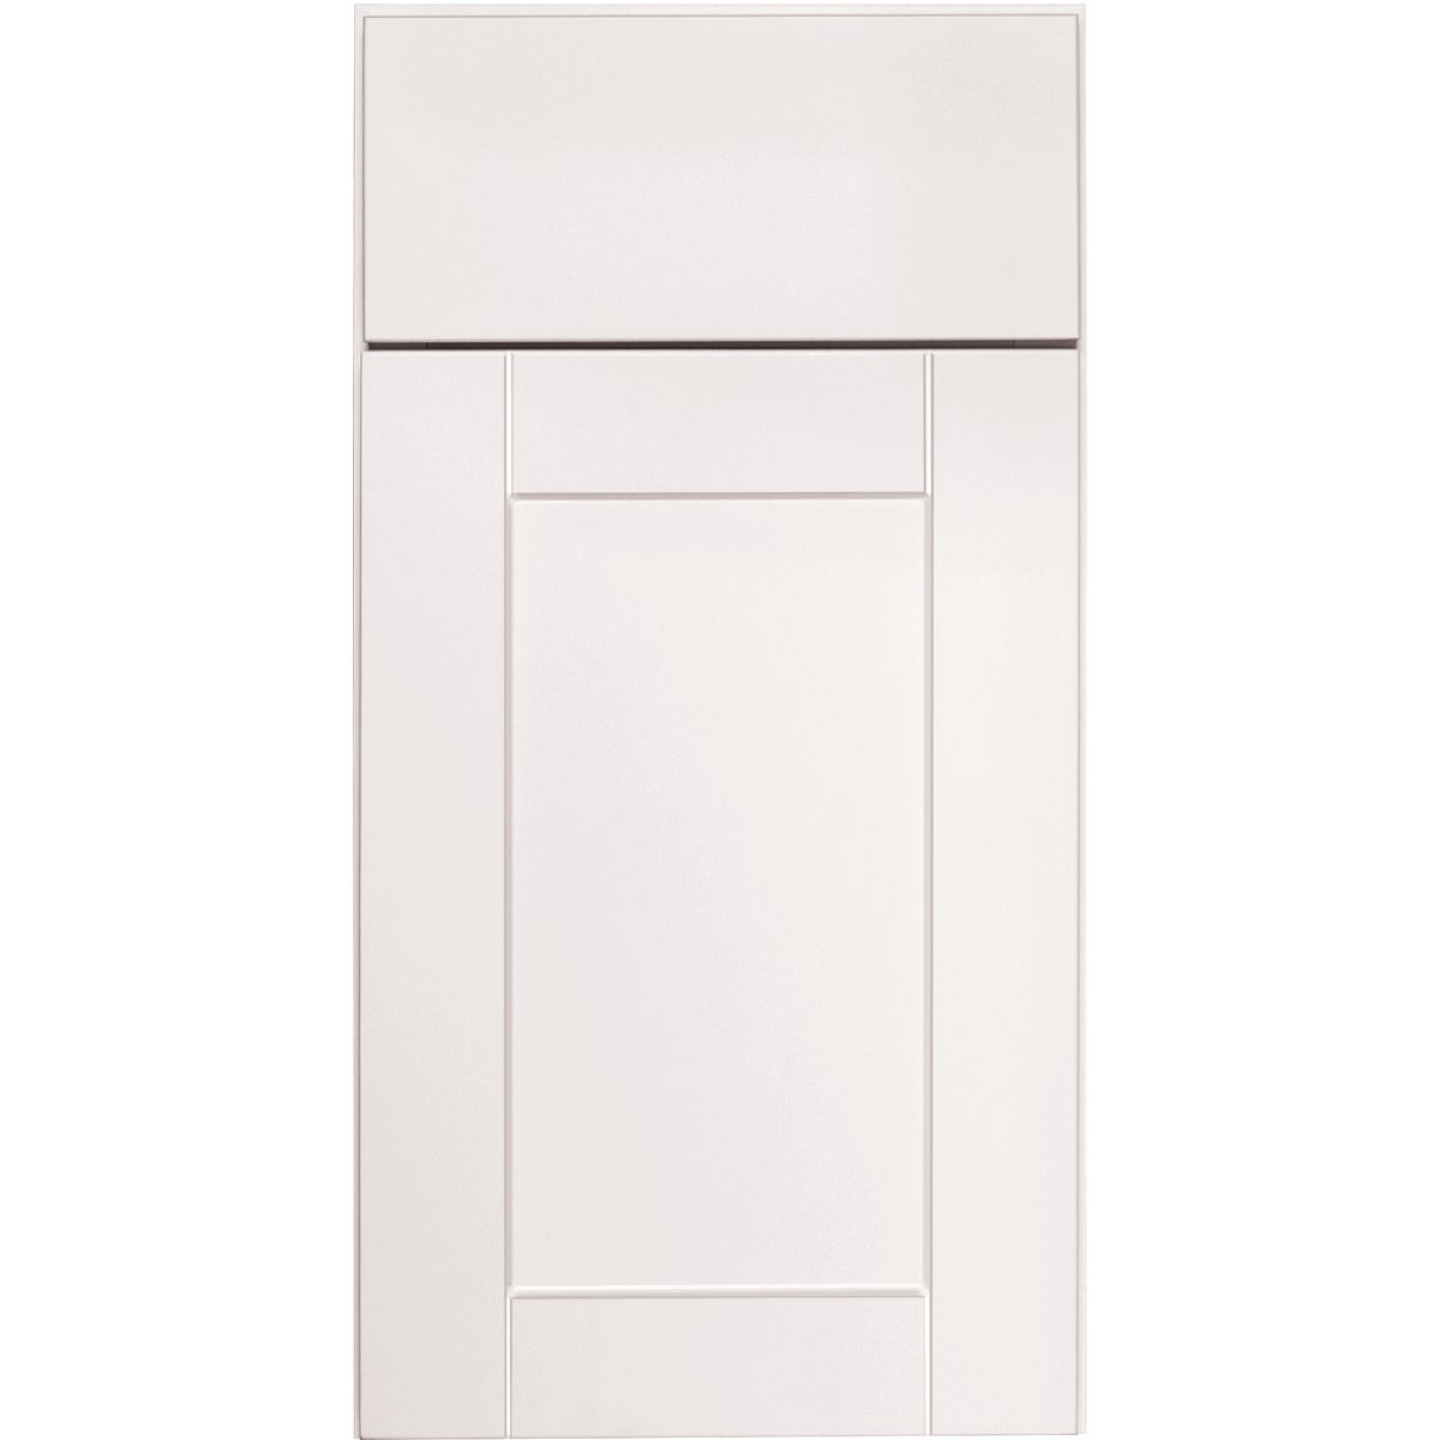 Continental Cabinets Andover Shaker 36 In. W x 12 In. H x 12 In. D White Thermofoil Bridge Wall Kitchen Cabinet Image 3